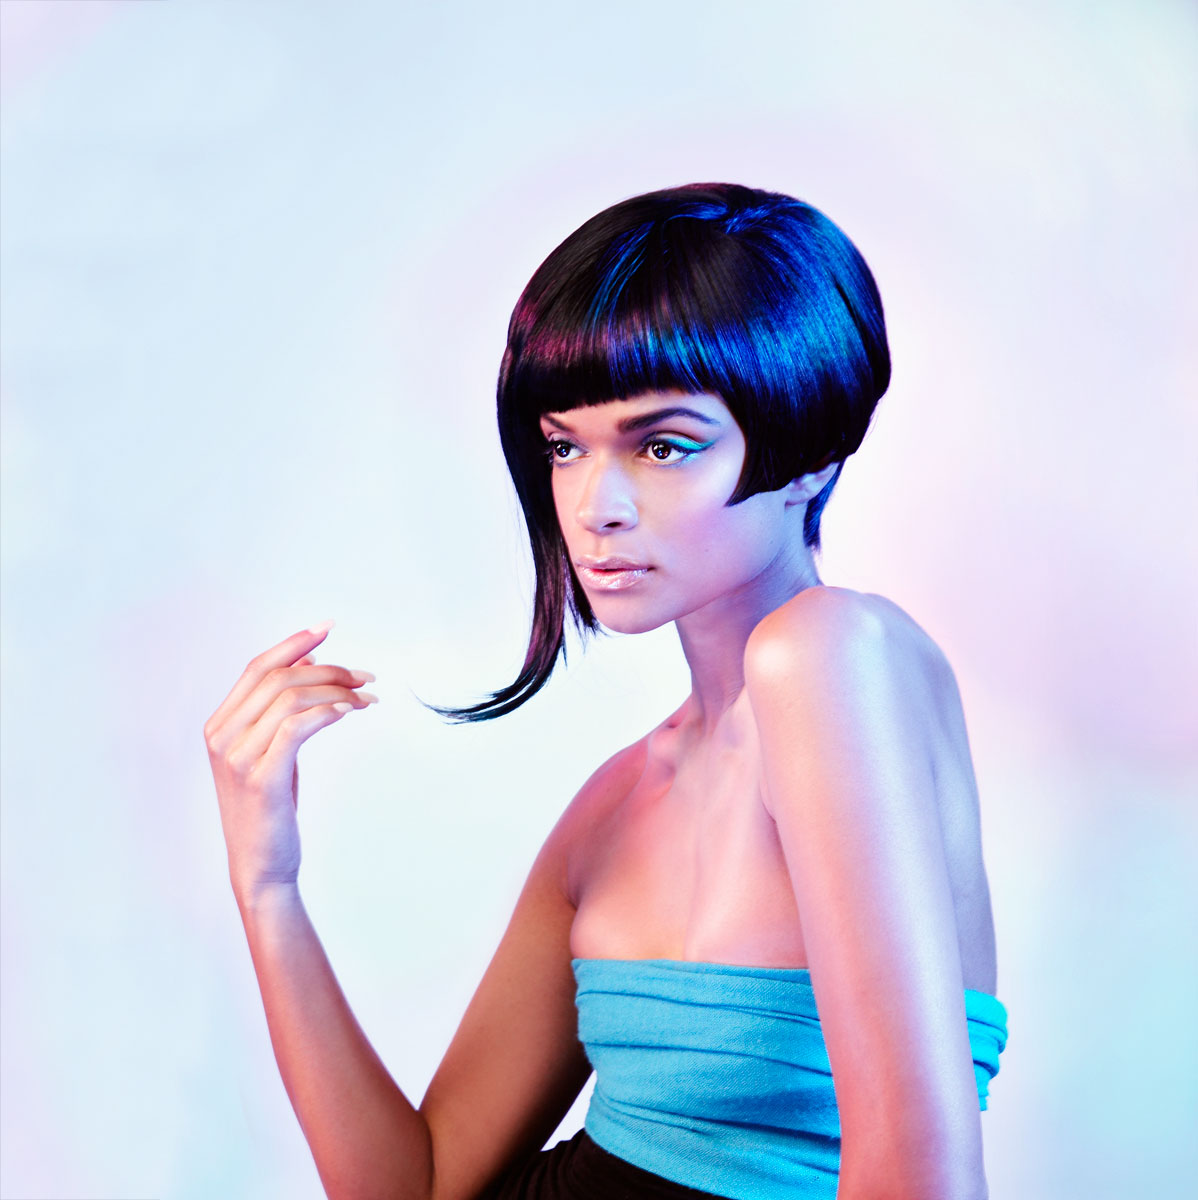 Mixed race model with 60s hair and makeup